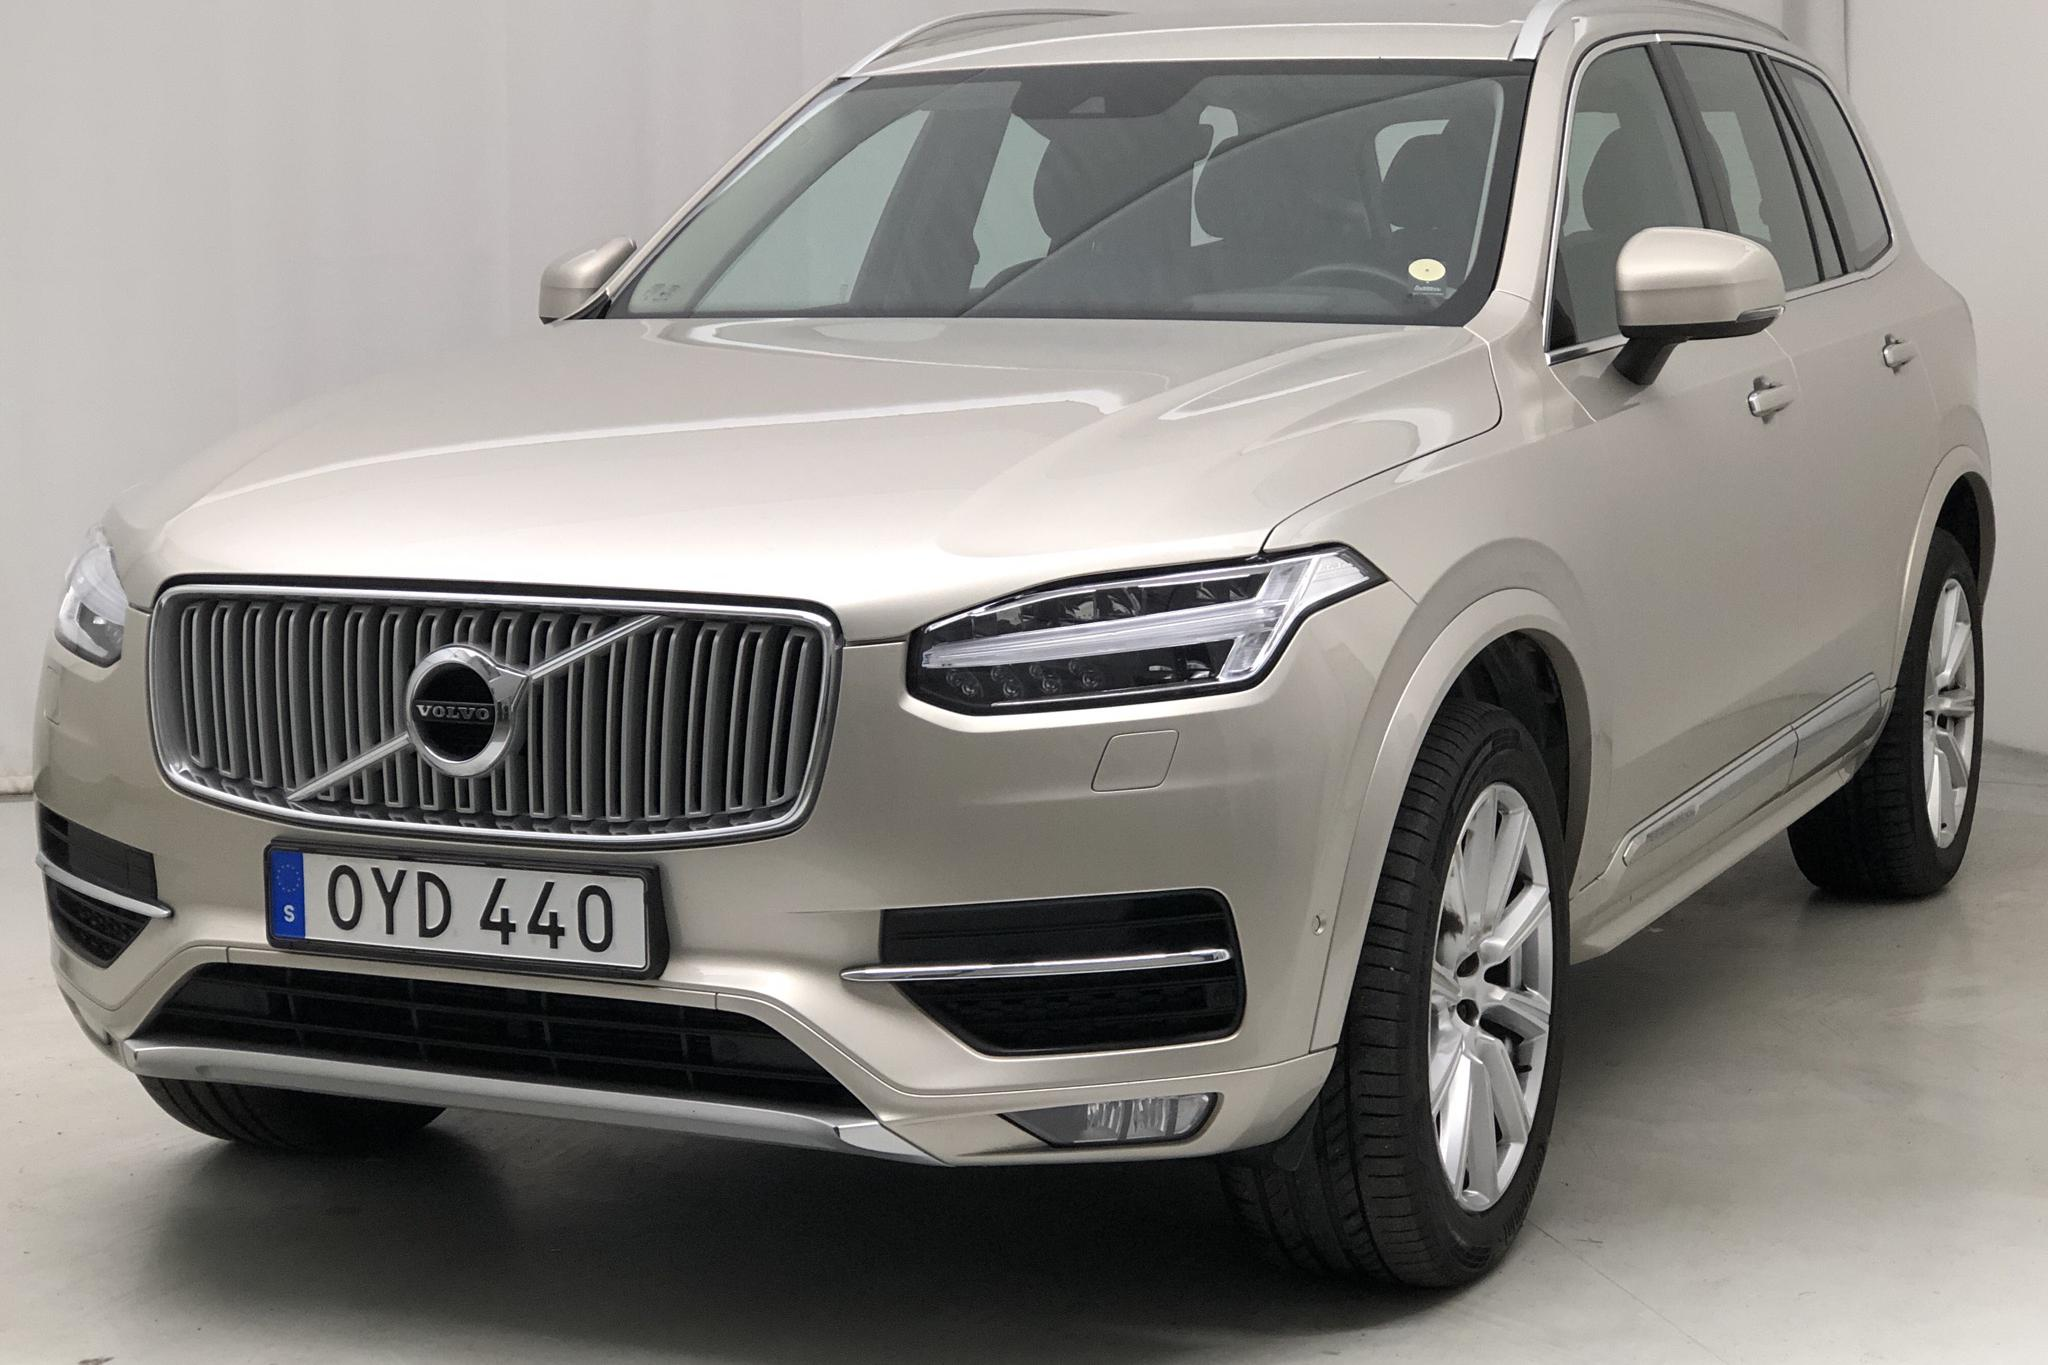 Volvo XC90 D5 AWD (225hk) - 116 560 km - Automatic - Light Brown - 2016